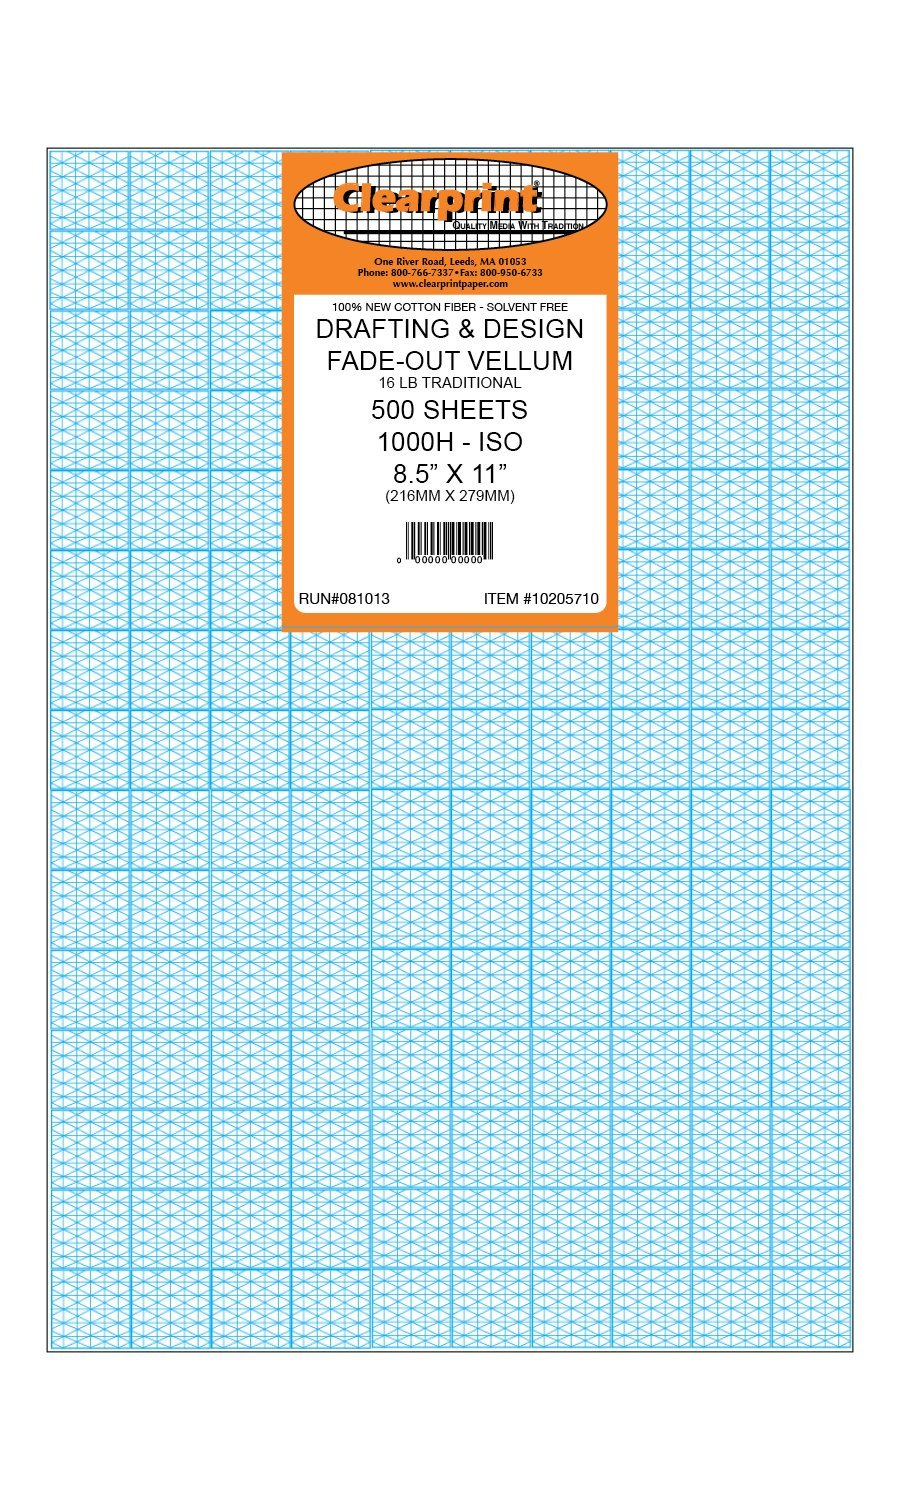 Clearprint 1000H Design Vellum Sheets with Printed Fade-Out 30-Degree Isometric Grid, 16 Lb., 100% Cotton, 8-1/2 x 11 Inches, 500 Sheets (10205710) by Clearprint (Image #1)